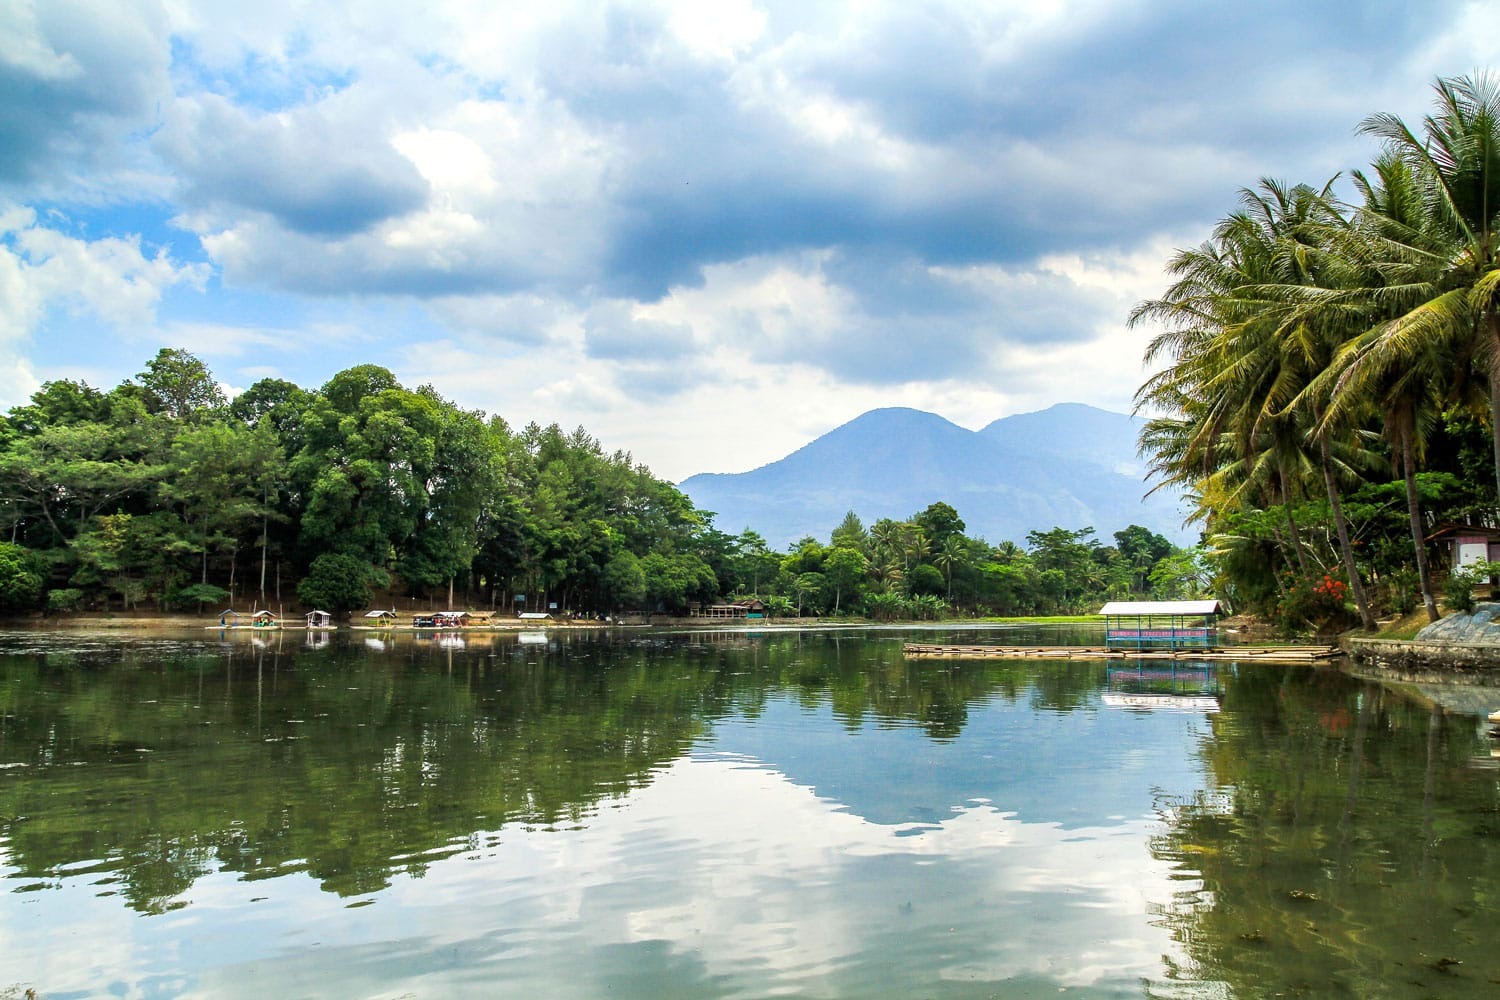 The lake of Situ Patenggang, West Java, Indonesia